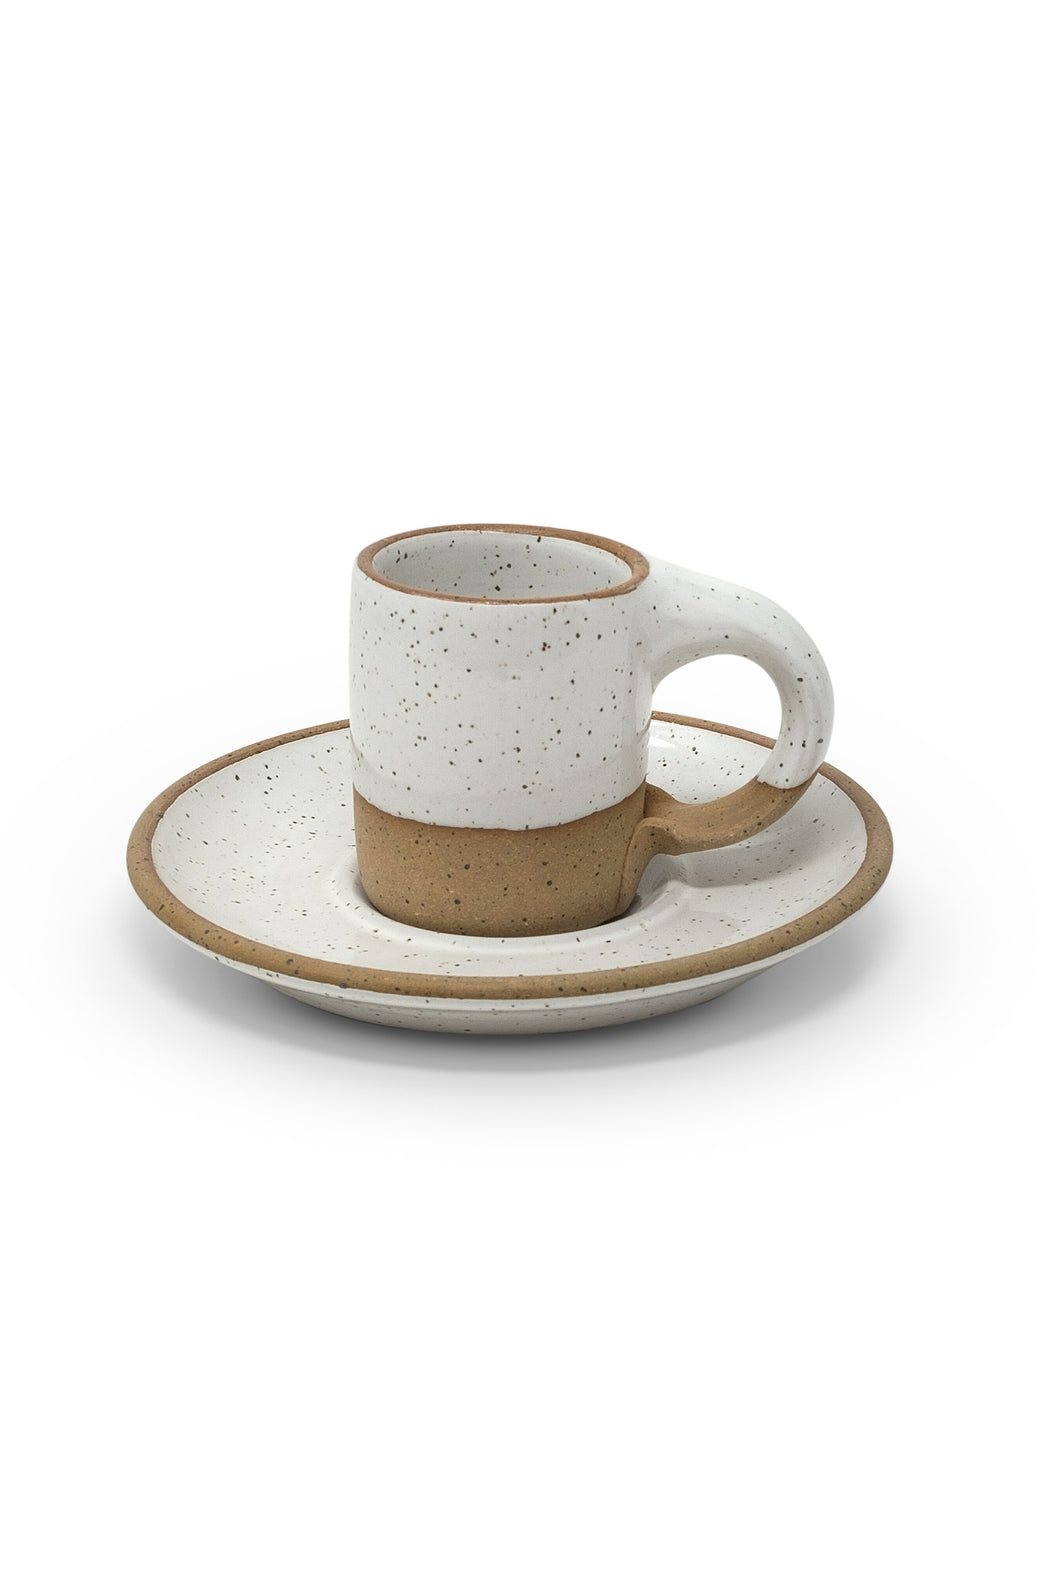 Espresso and Saucer